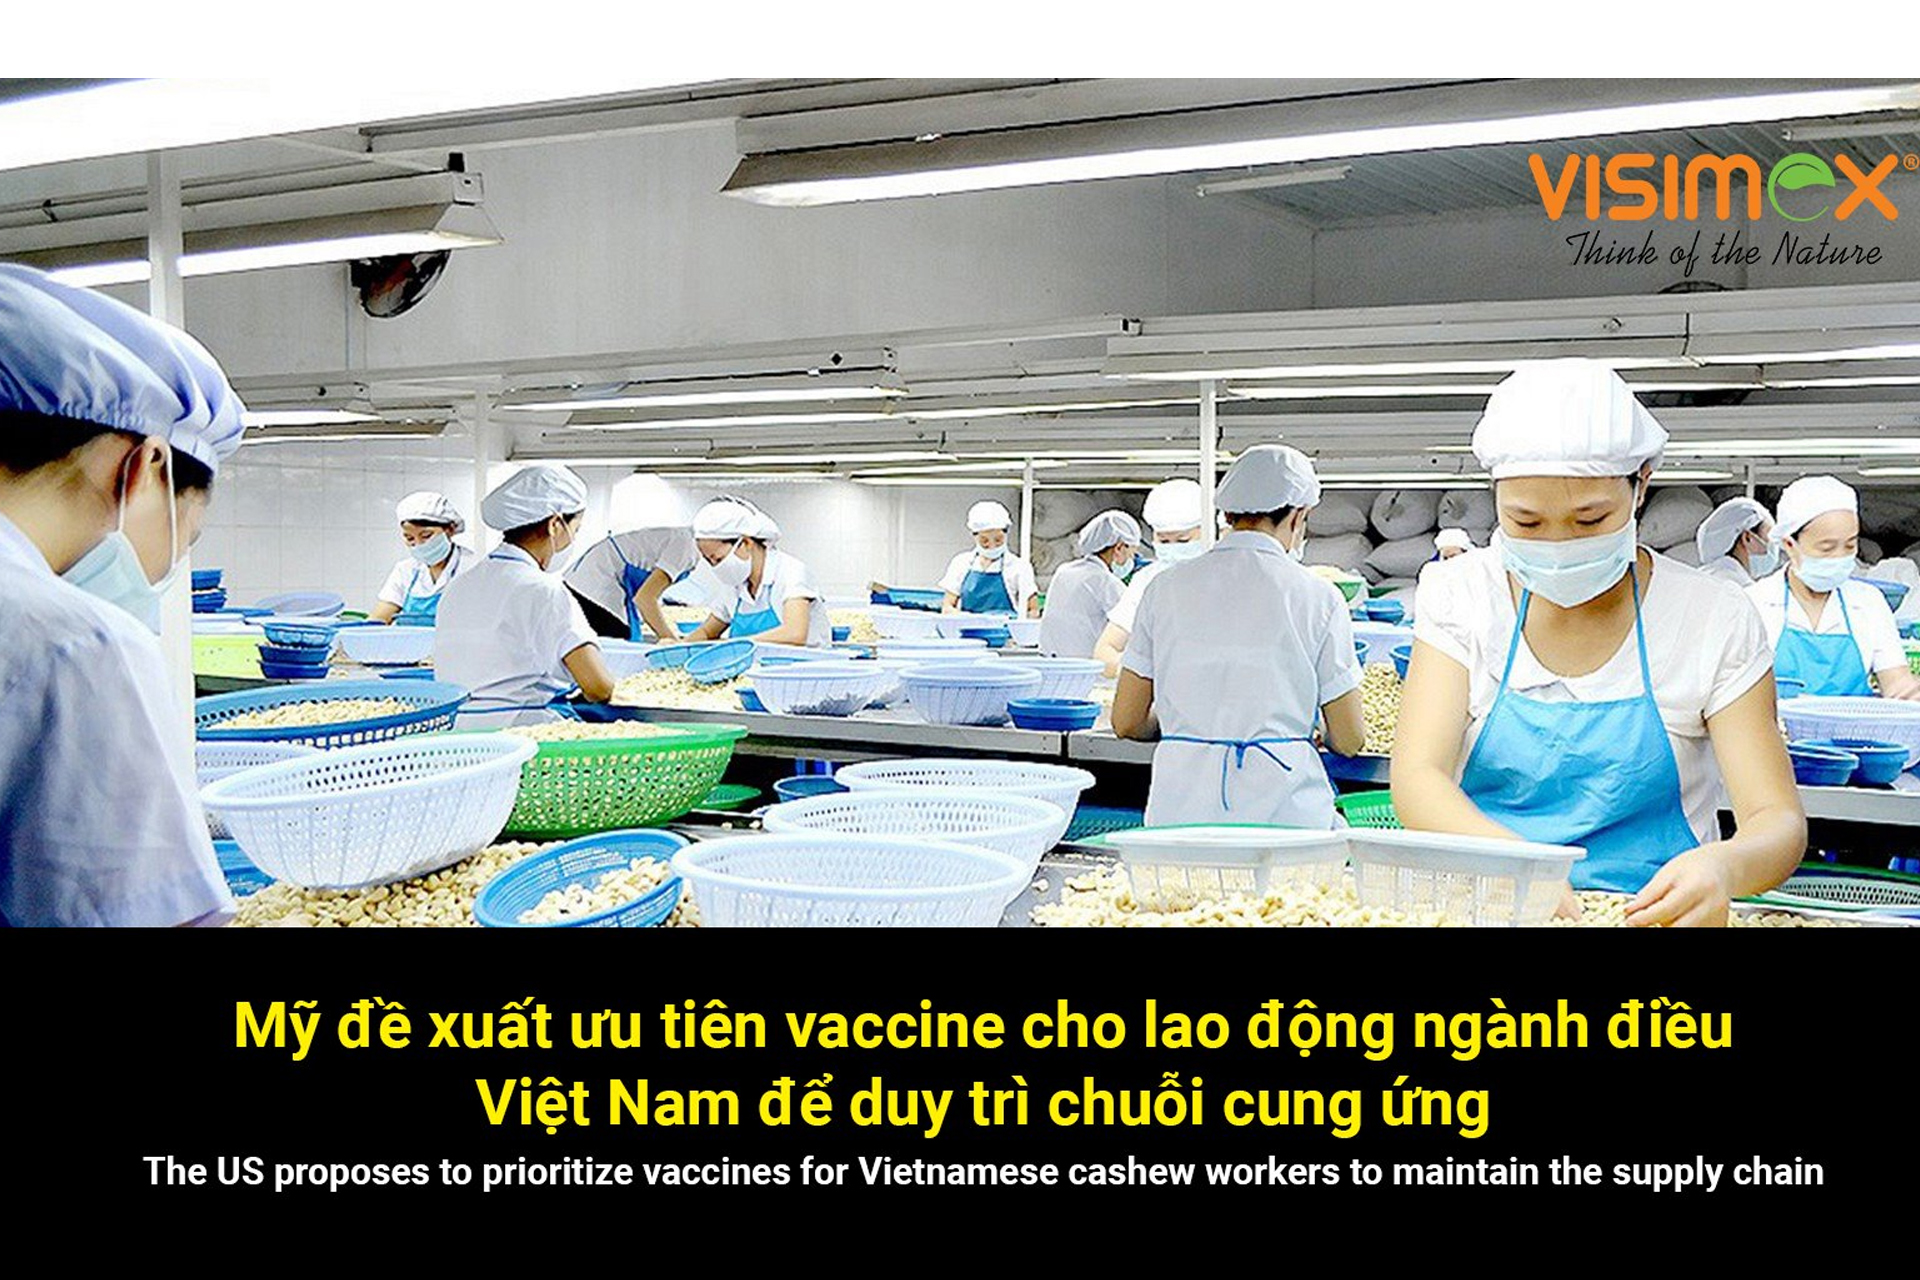 The American Food Industry Association suggested that Vietnam prioritize COVID-19 vaccines for the cashew industry